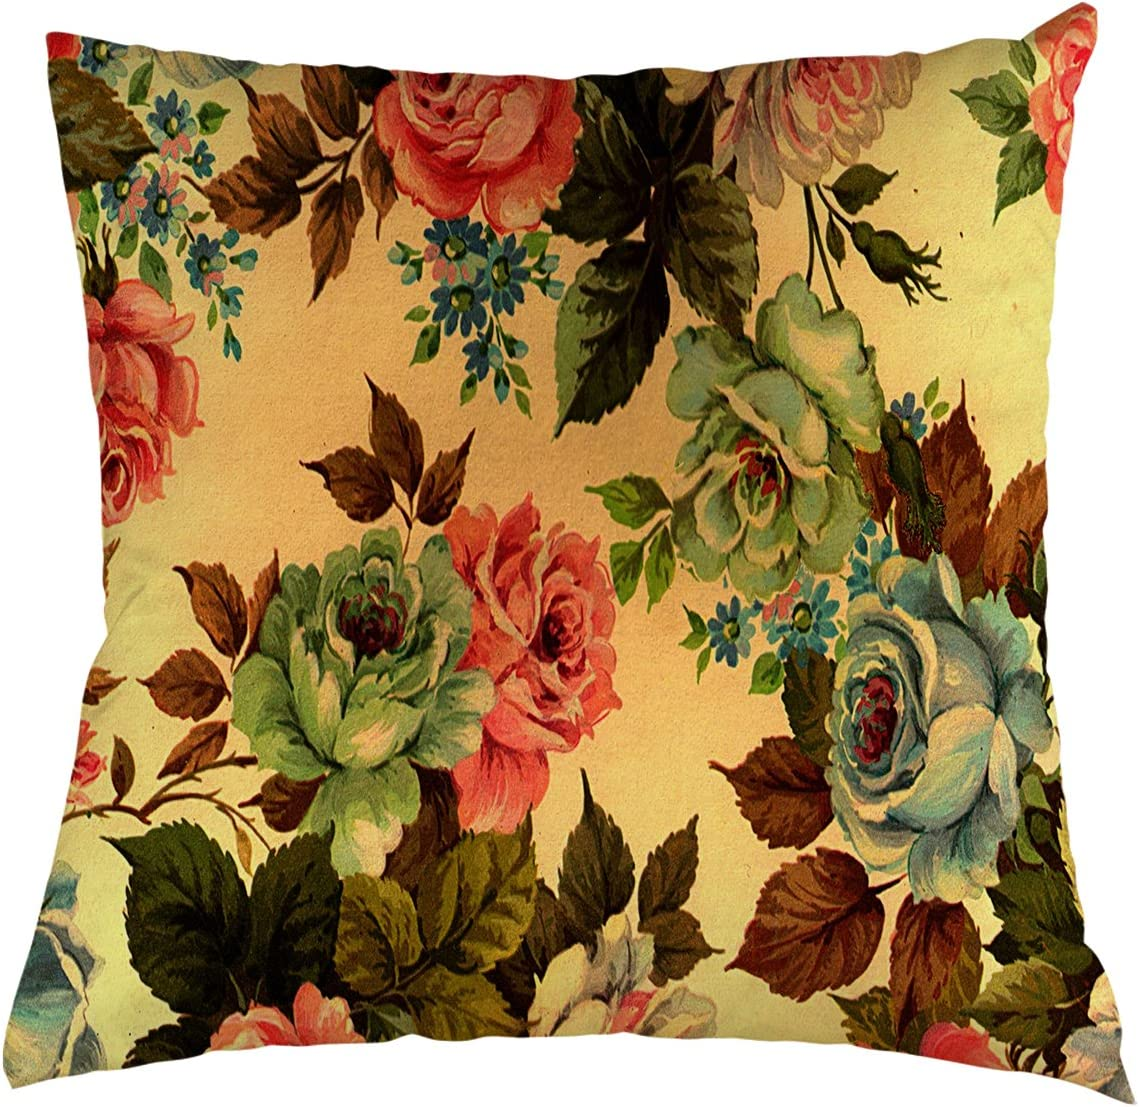 Amazon Com Painting Flowers Throw Pillow Case Beautiful Painting Rose Flowers Background For Home Decorative Throw Pillow Cover 20 X20 Home Kitchen